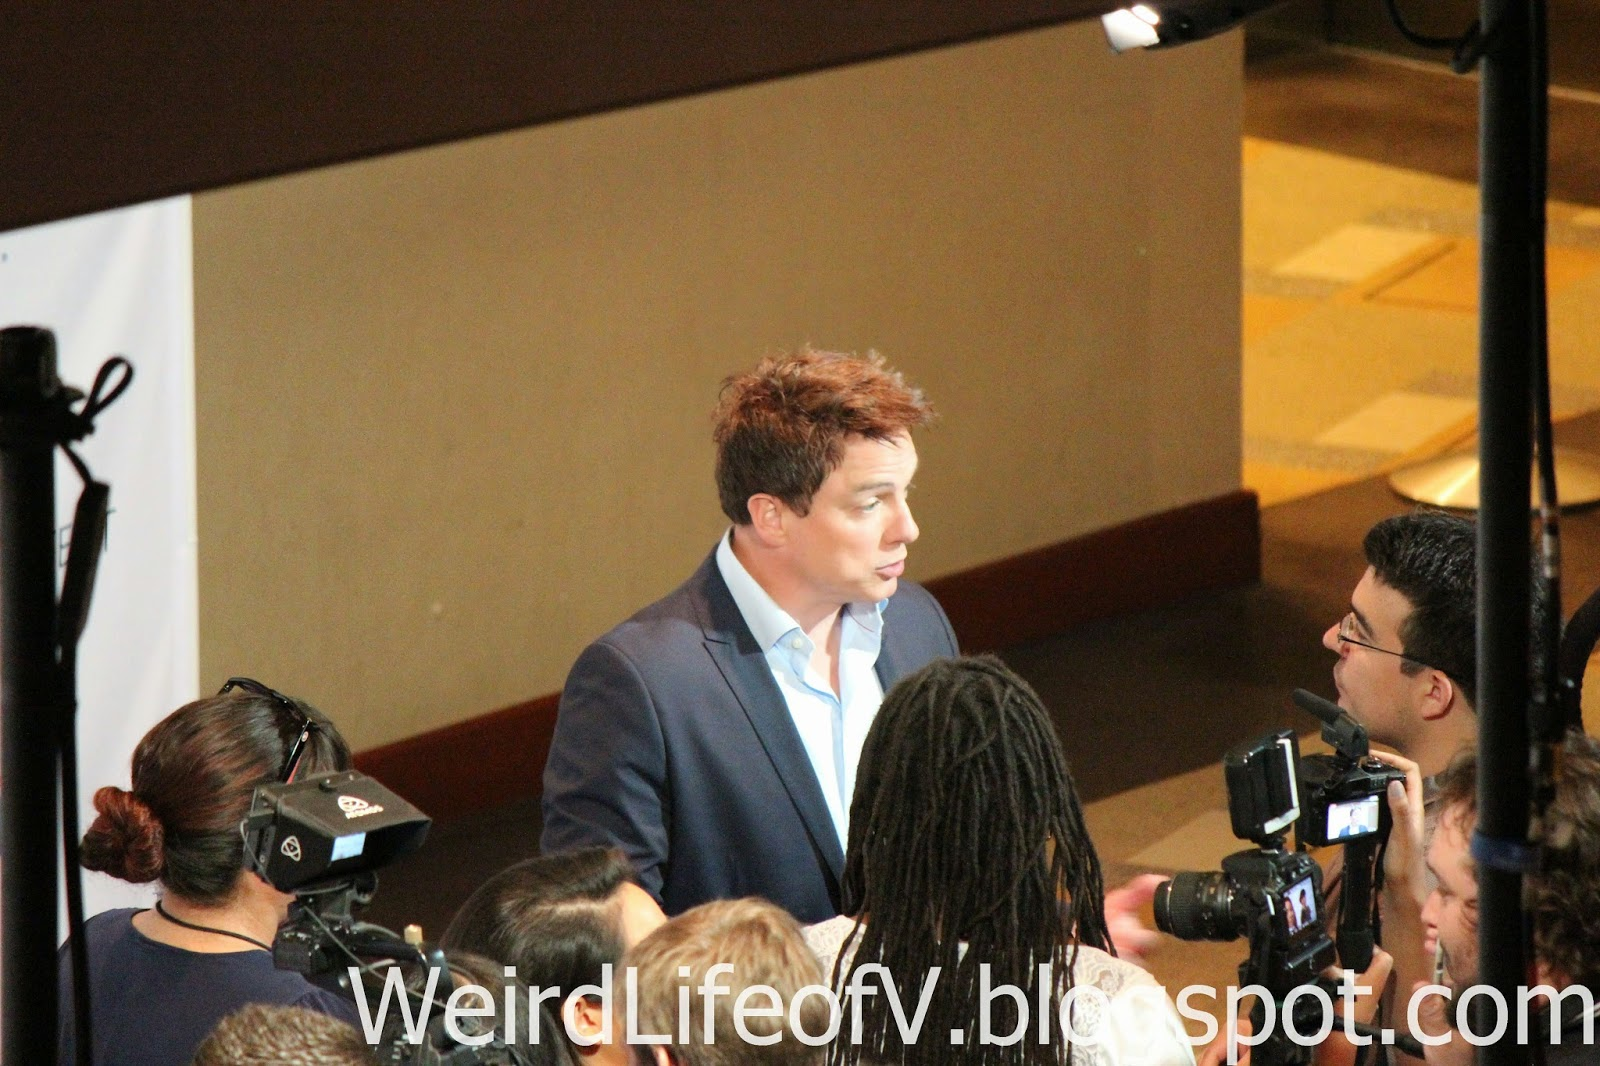 John Barrowman doing press interviews before the panel